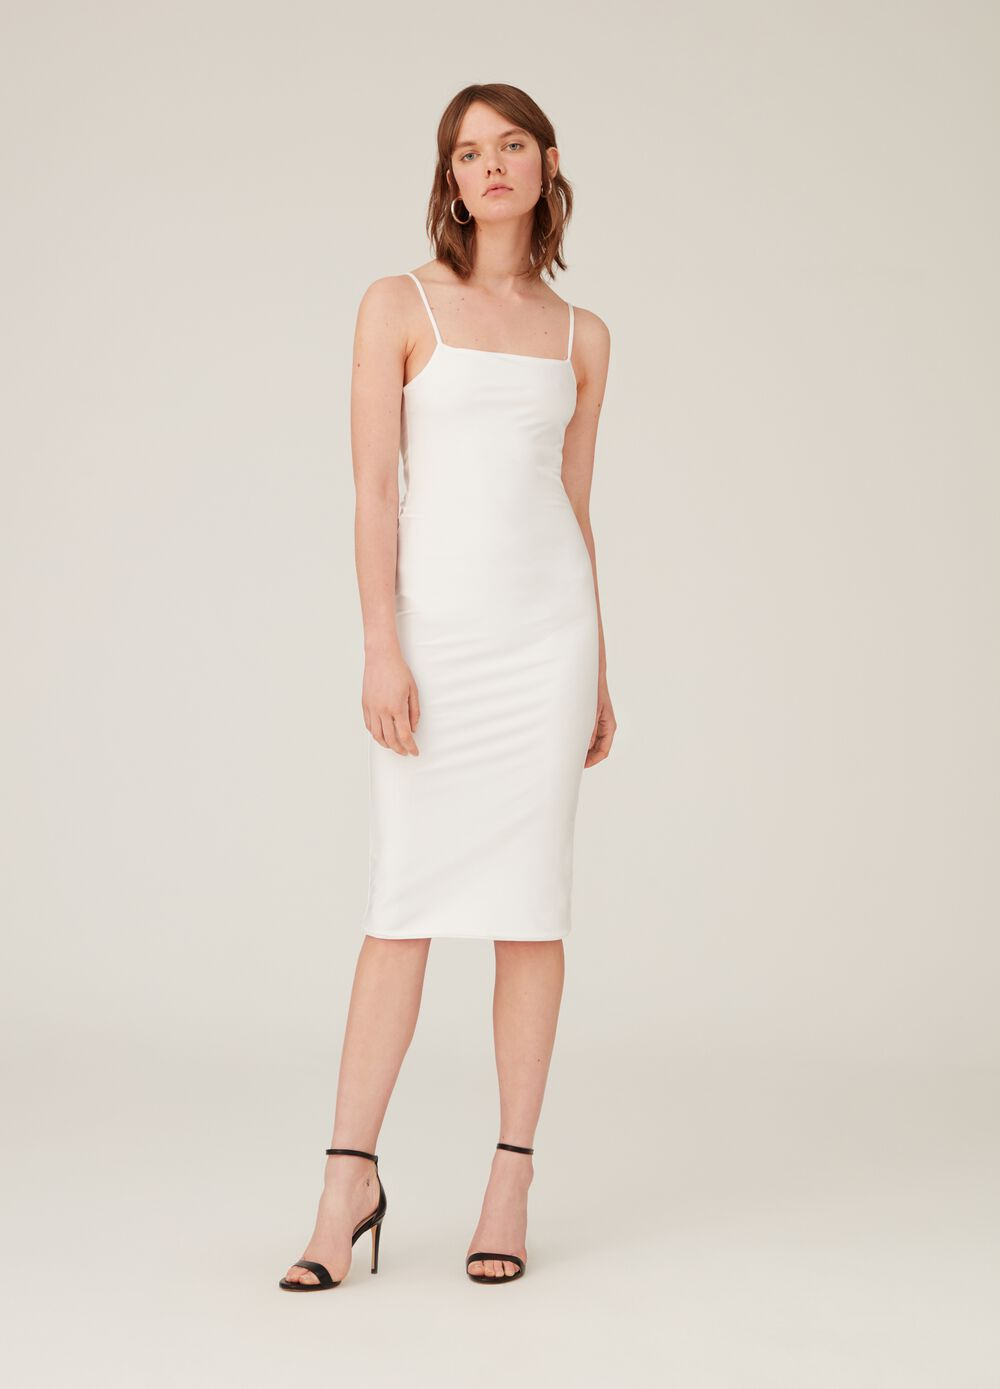 K+K for OVS stretch tube dress with spaghetti straps